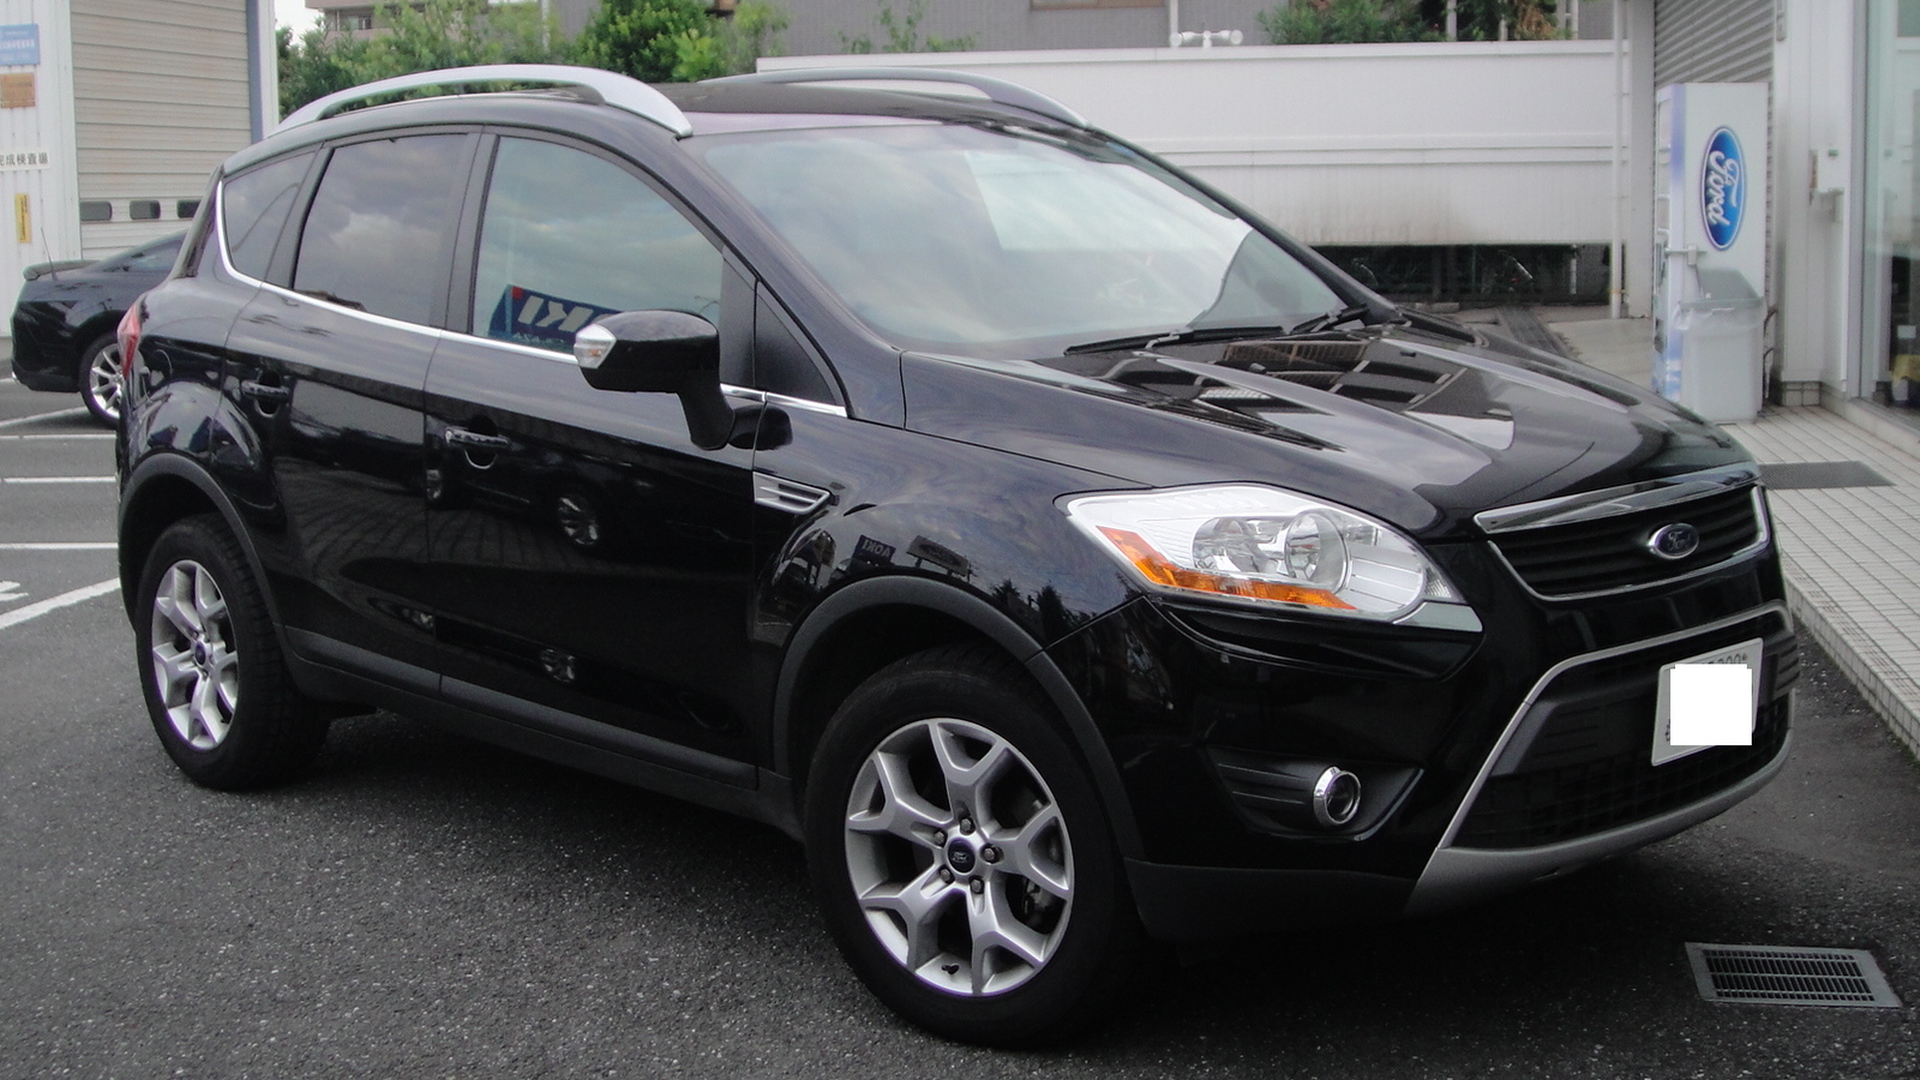 file ford kuga front tx wikimedia commons. Black Bedroom Furniture Sets. Home Design Ideas